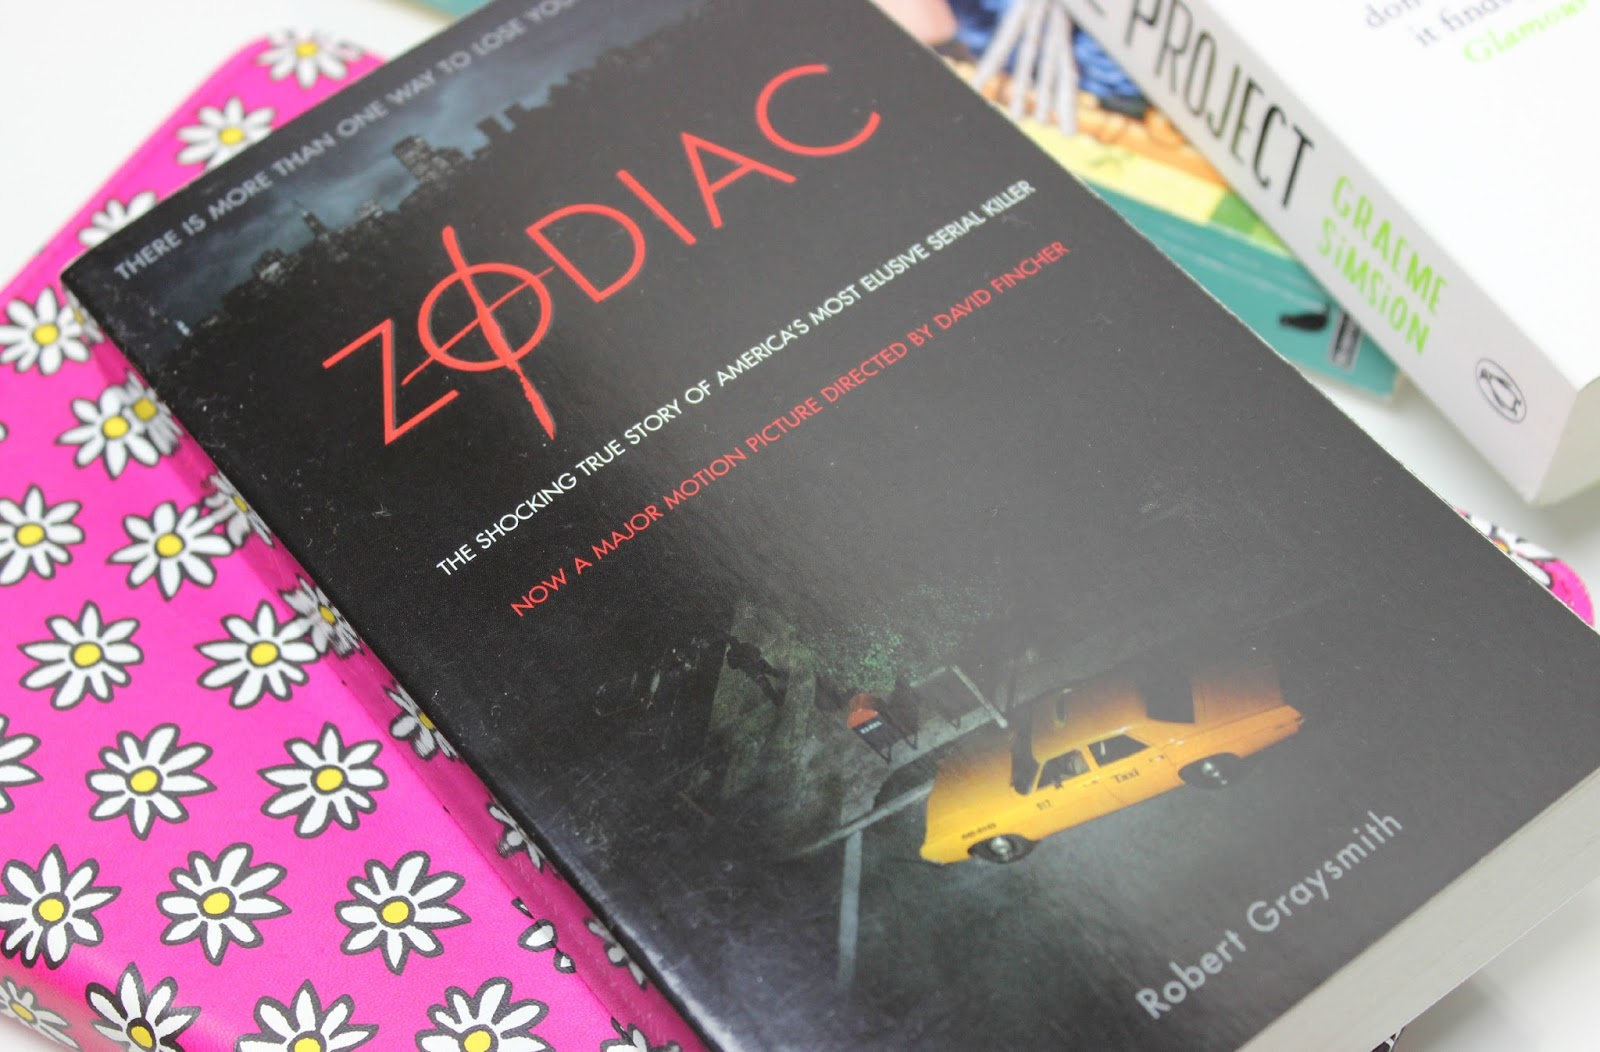 A picture of Zodiac by Robert Graysmith